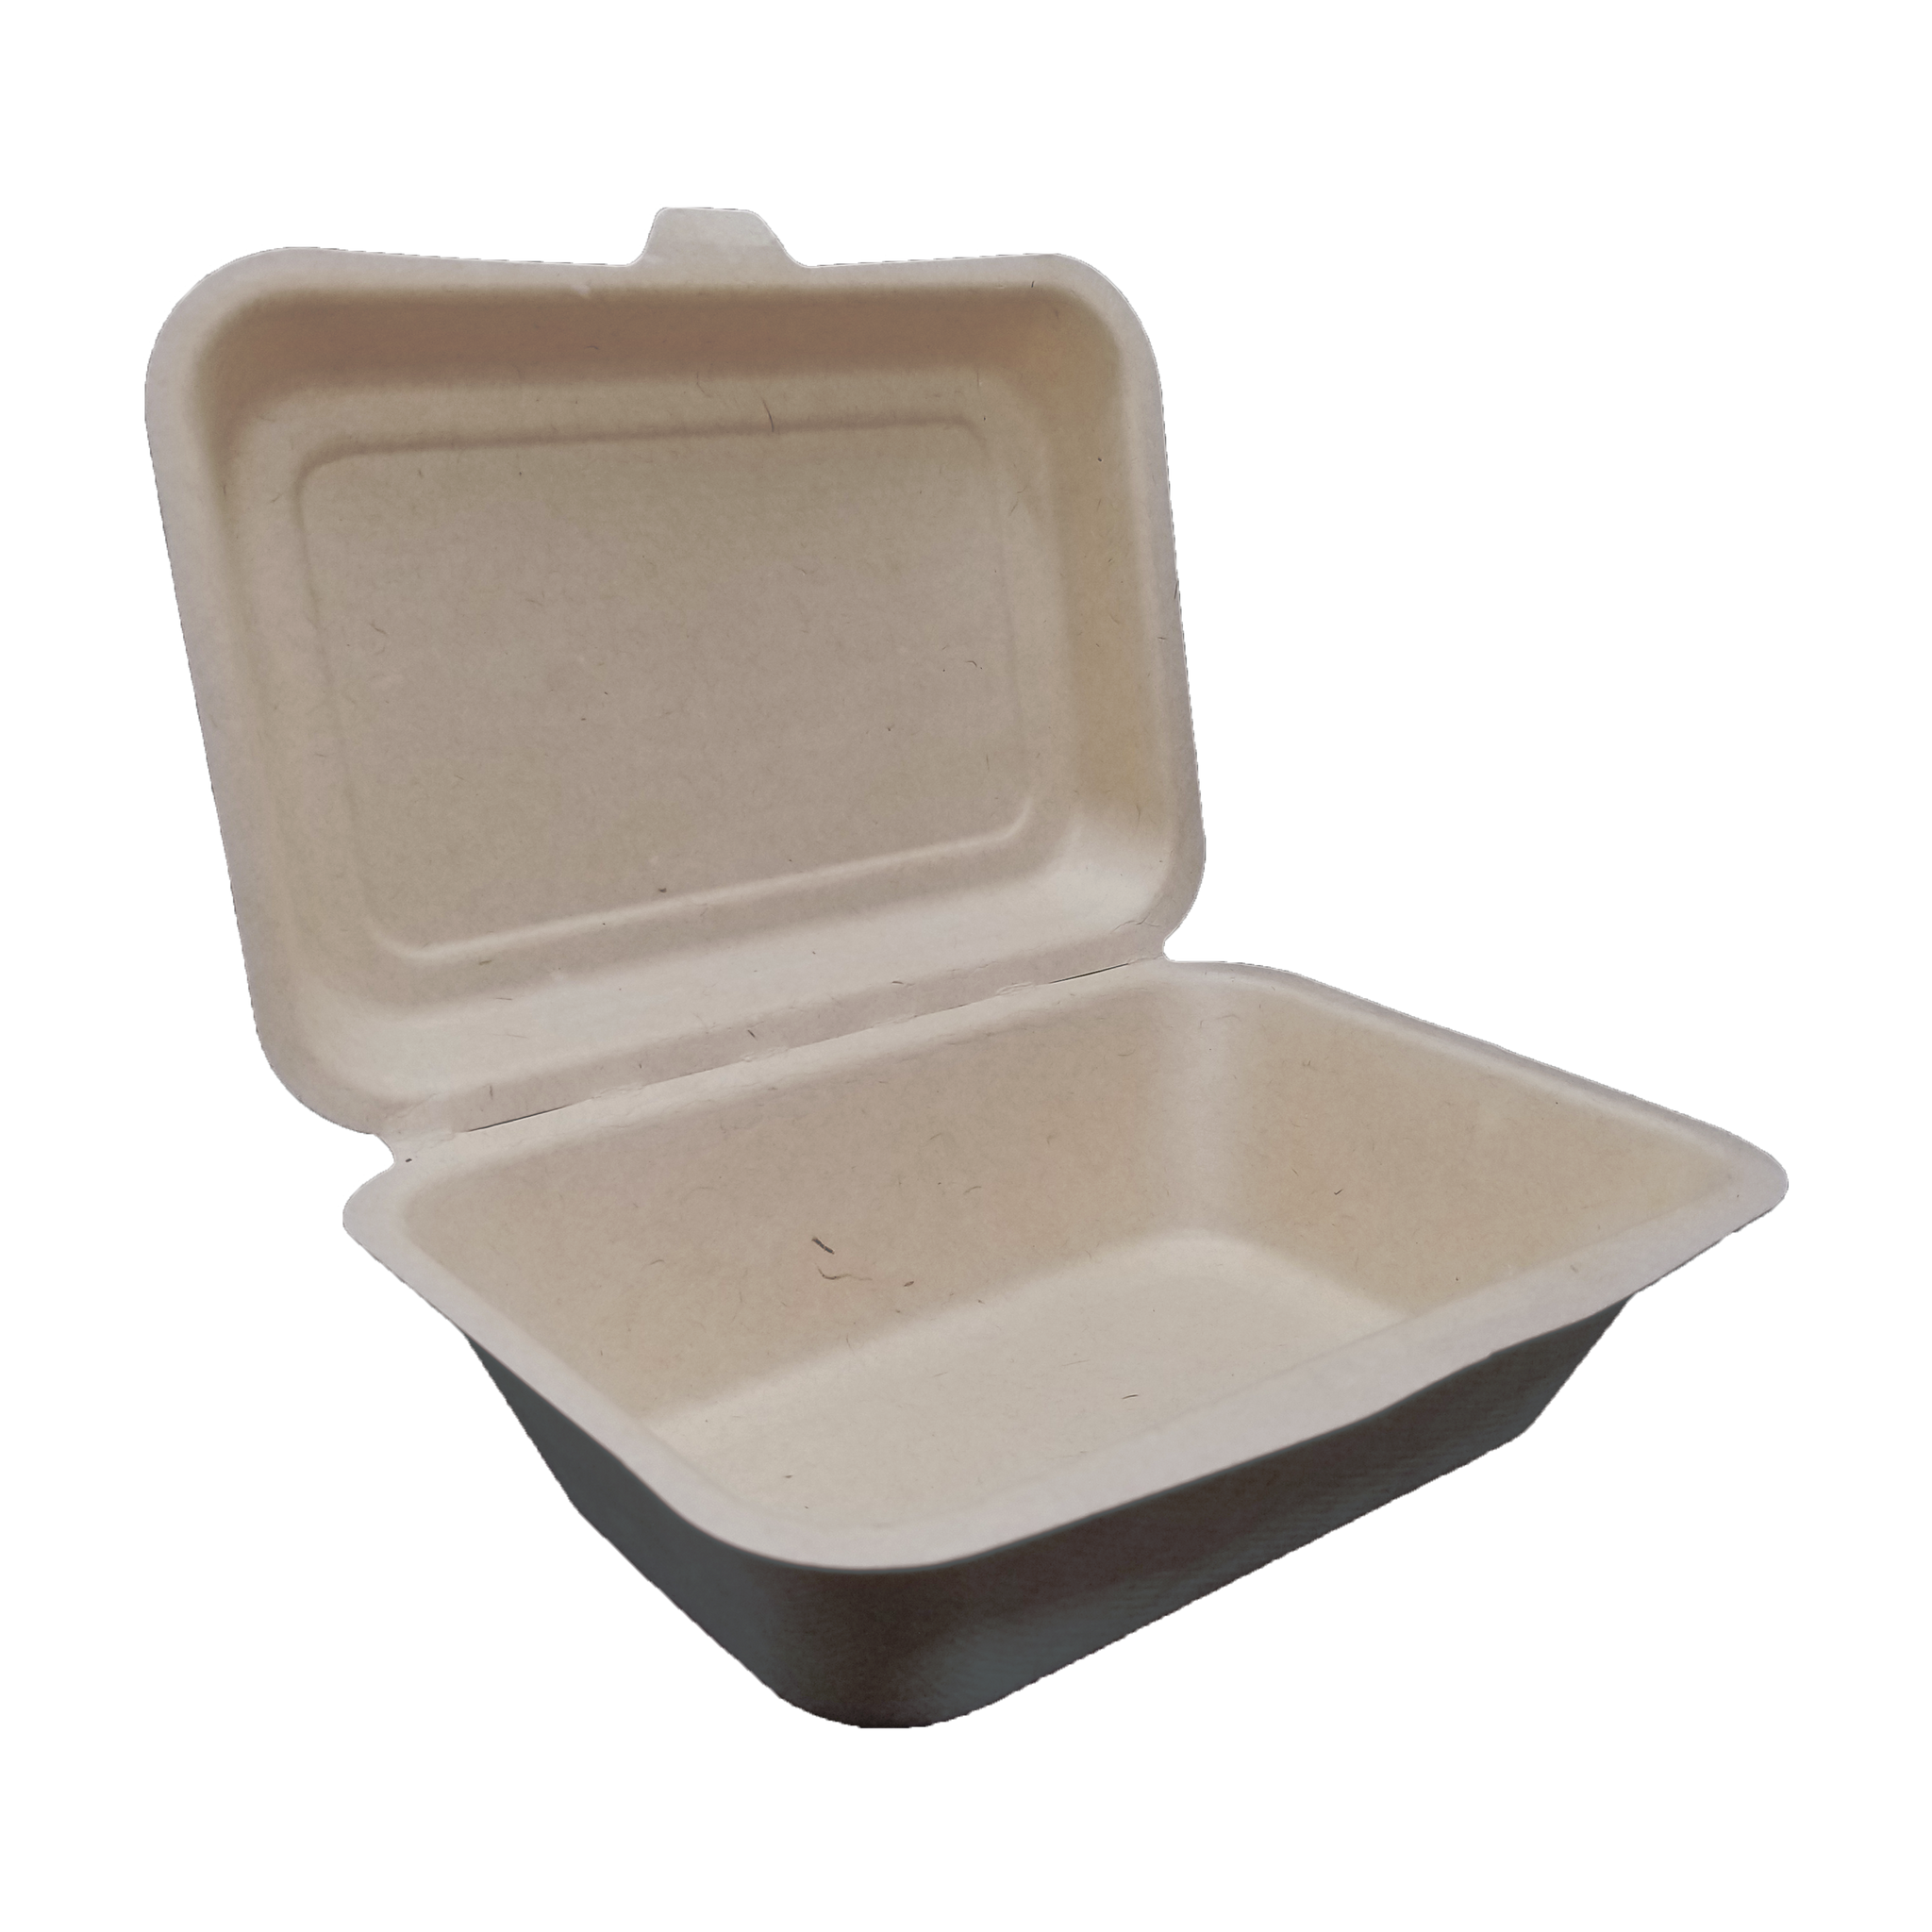 Sugarcane Food Container - Lunchbox / Clamshell